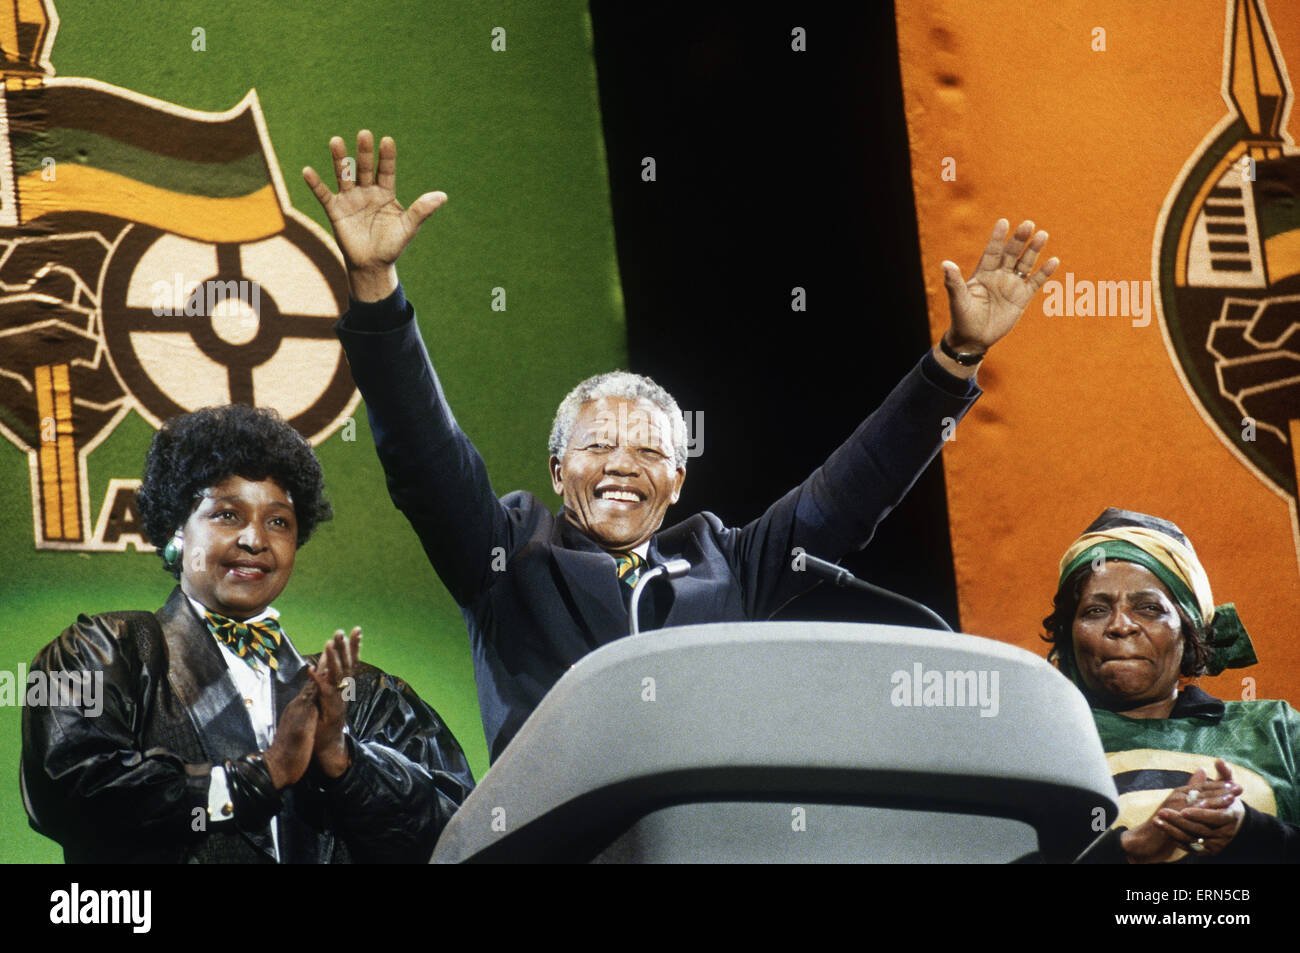 Nelson Mandela Anc President Of South Africa At Wembley With